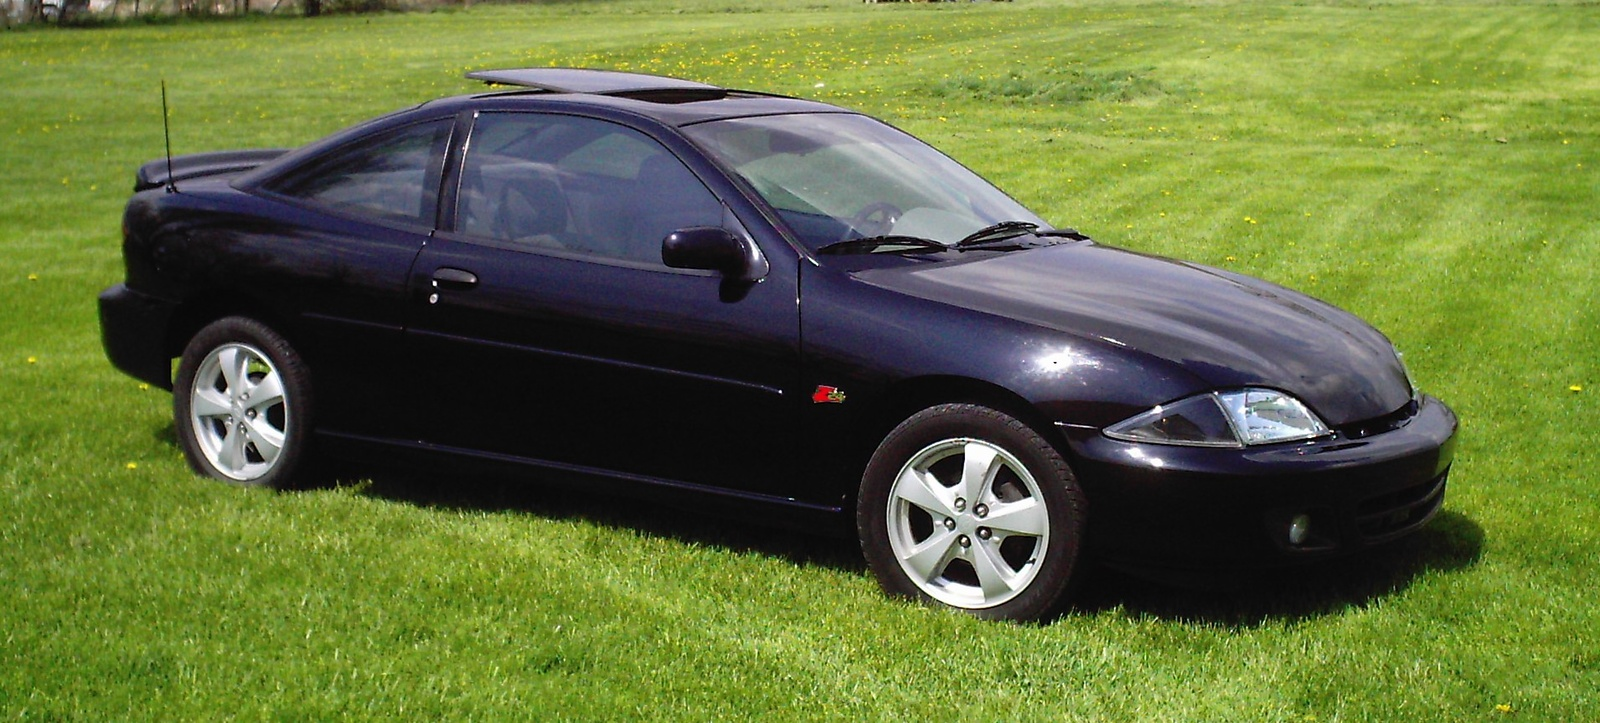 hight resolution of chevrolet cavalier coupe j 2000 7